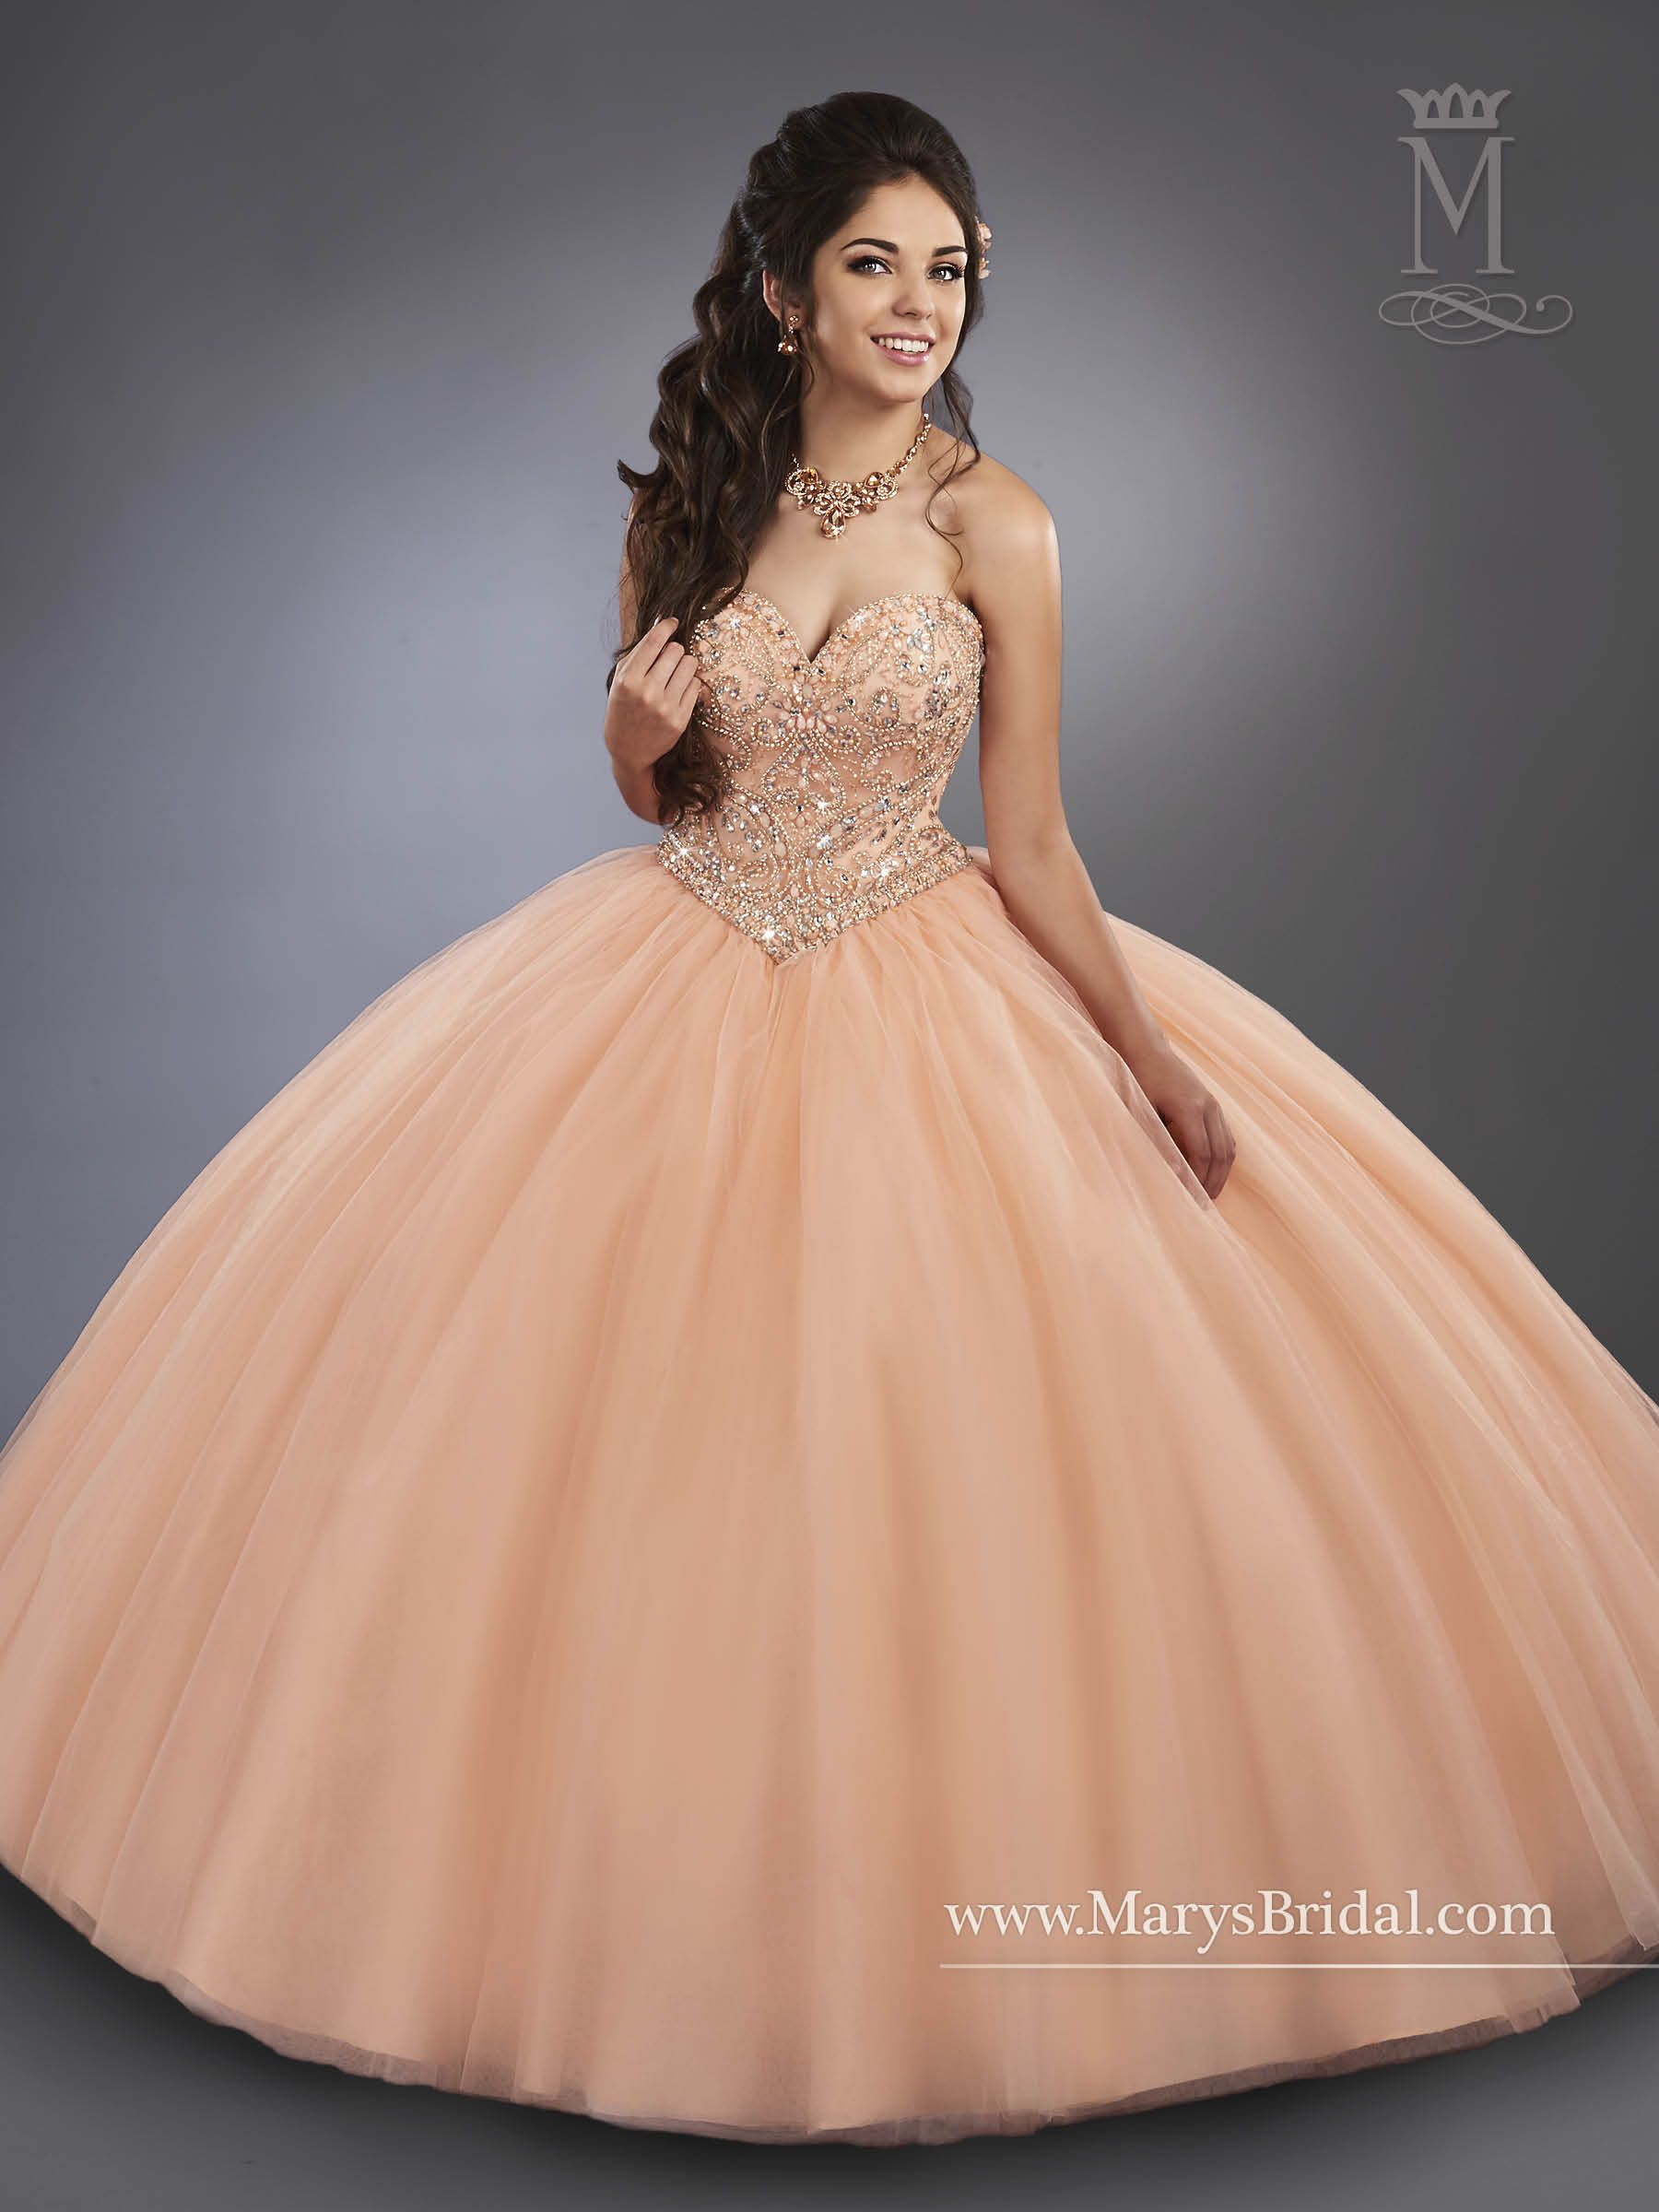 9c37a4d17f6 Beading embellishes the strapless bodice with a sweetheart neckline